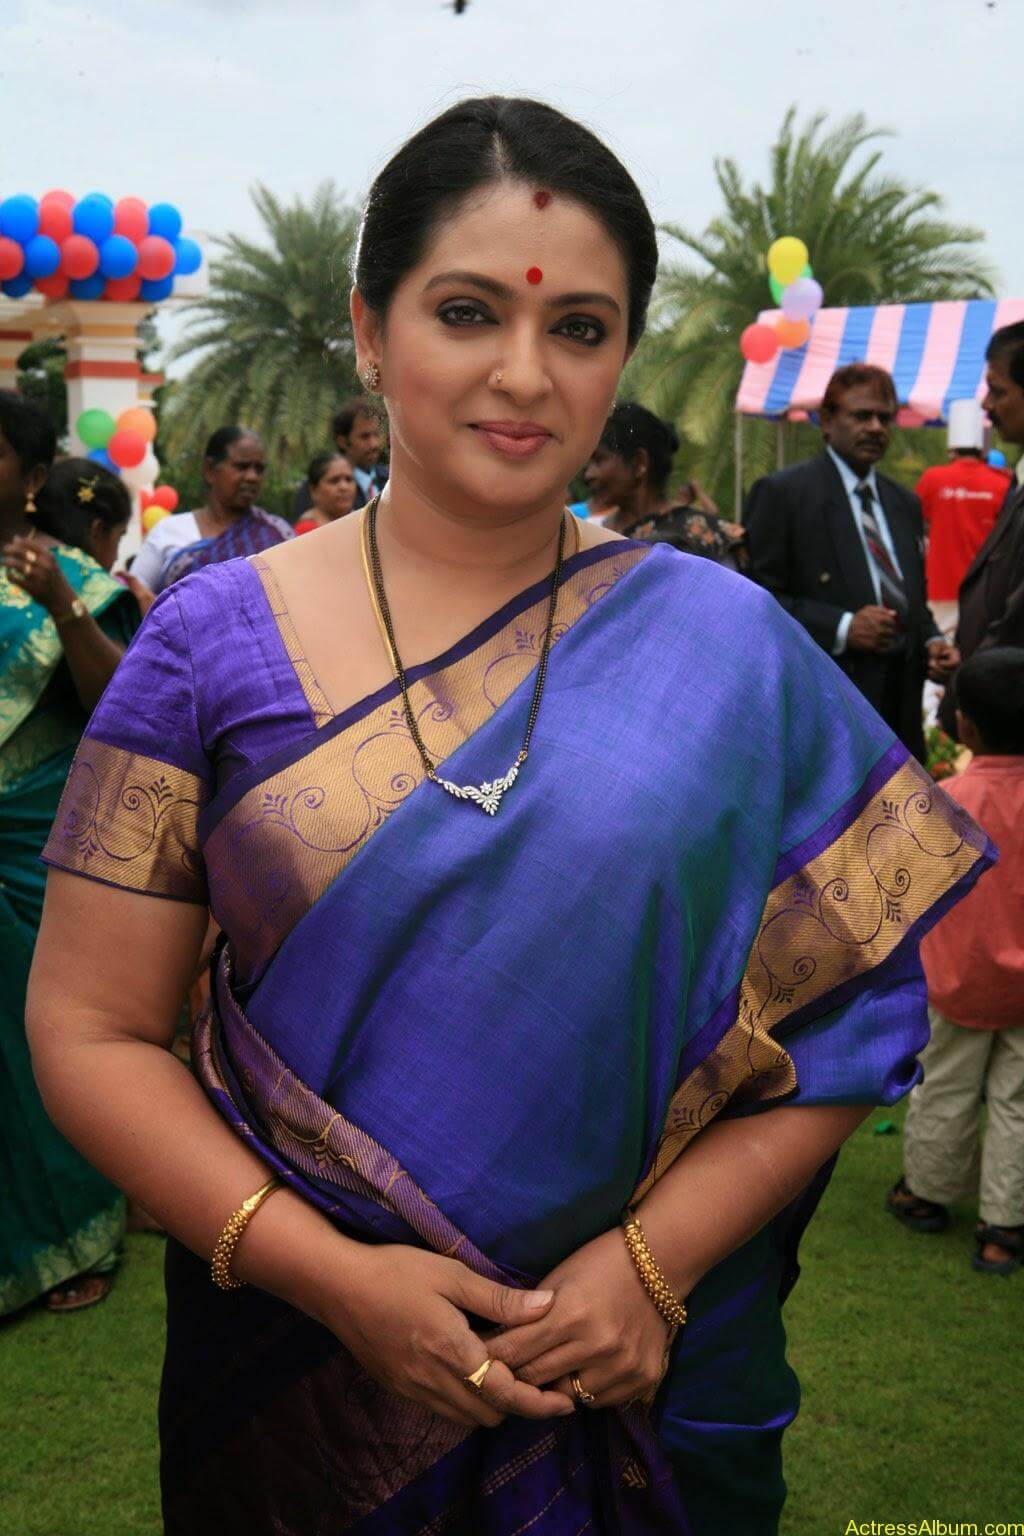 Seetha Aunty Hot Pics In Saree - Actress Album